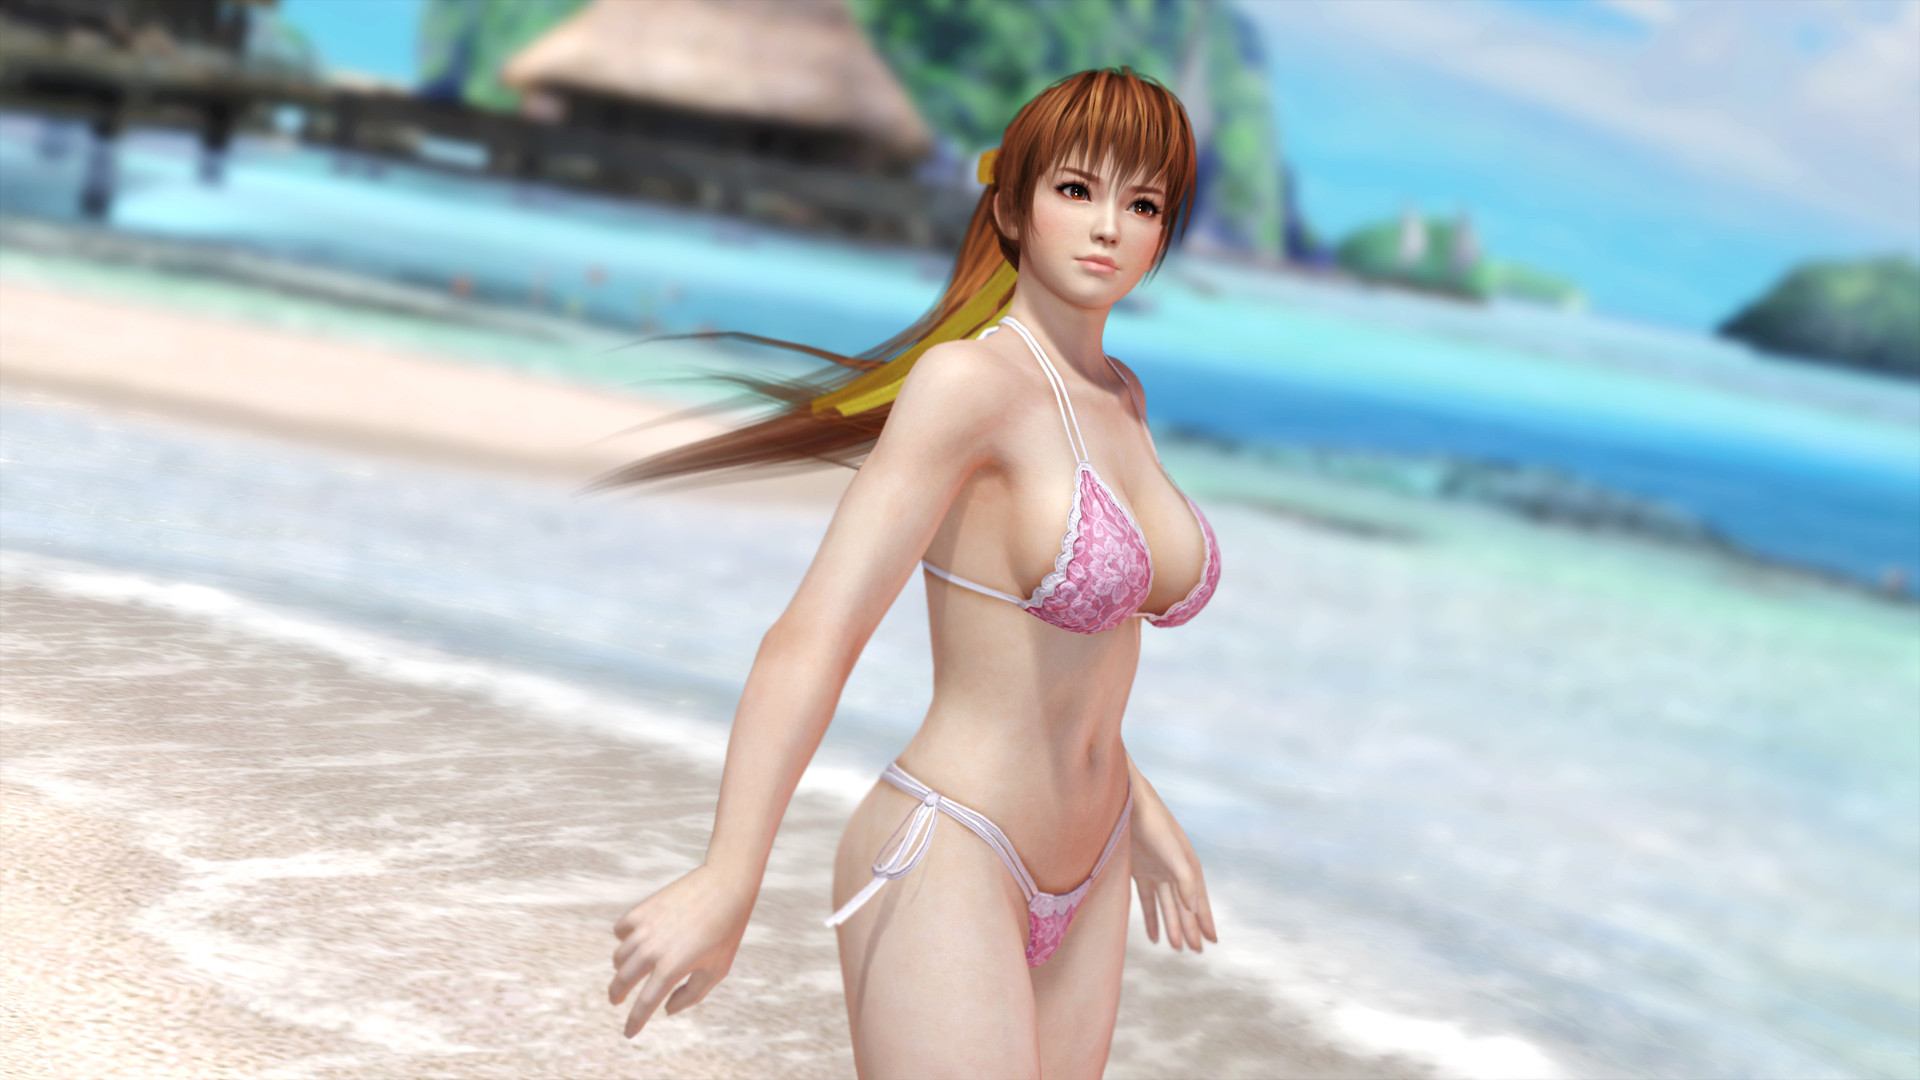 Dead or Alive 5 Plus 15022013c